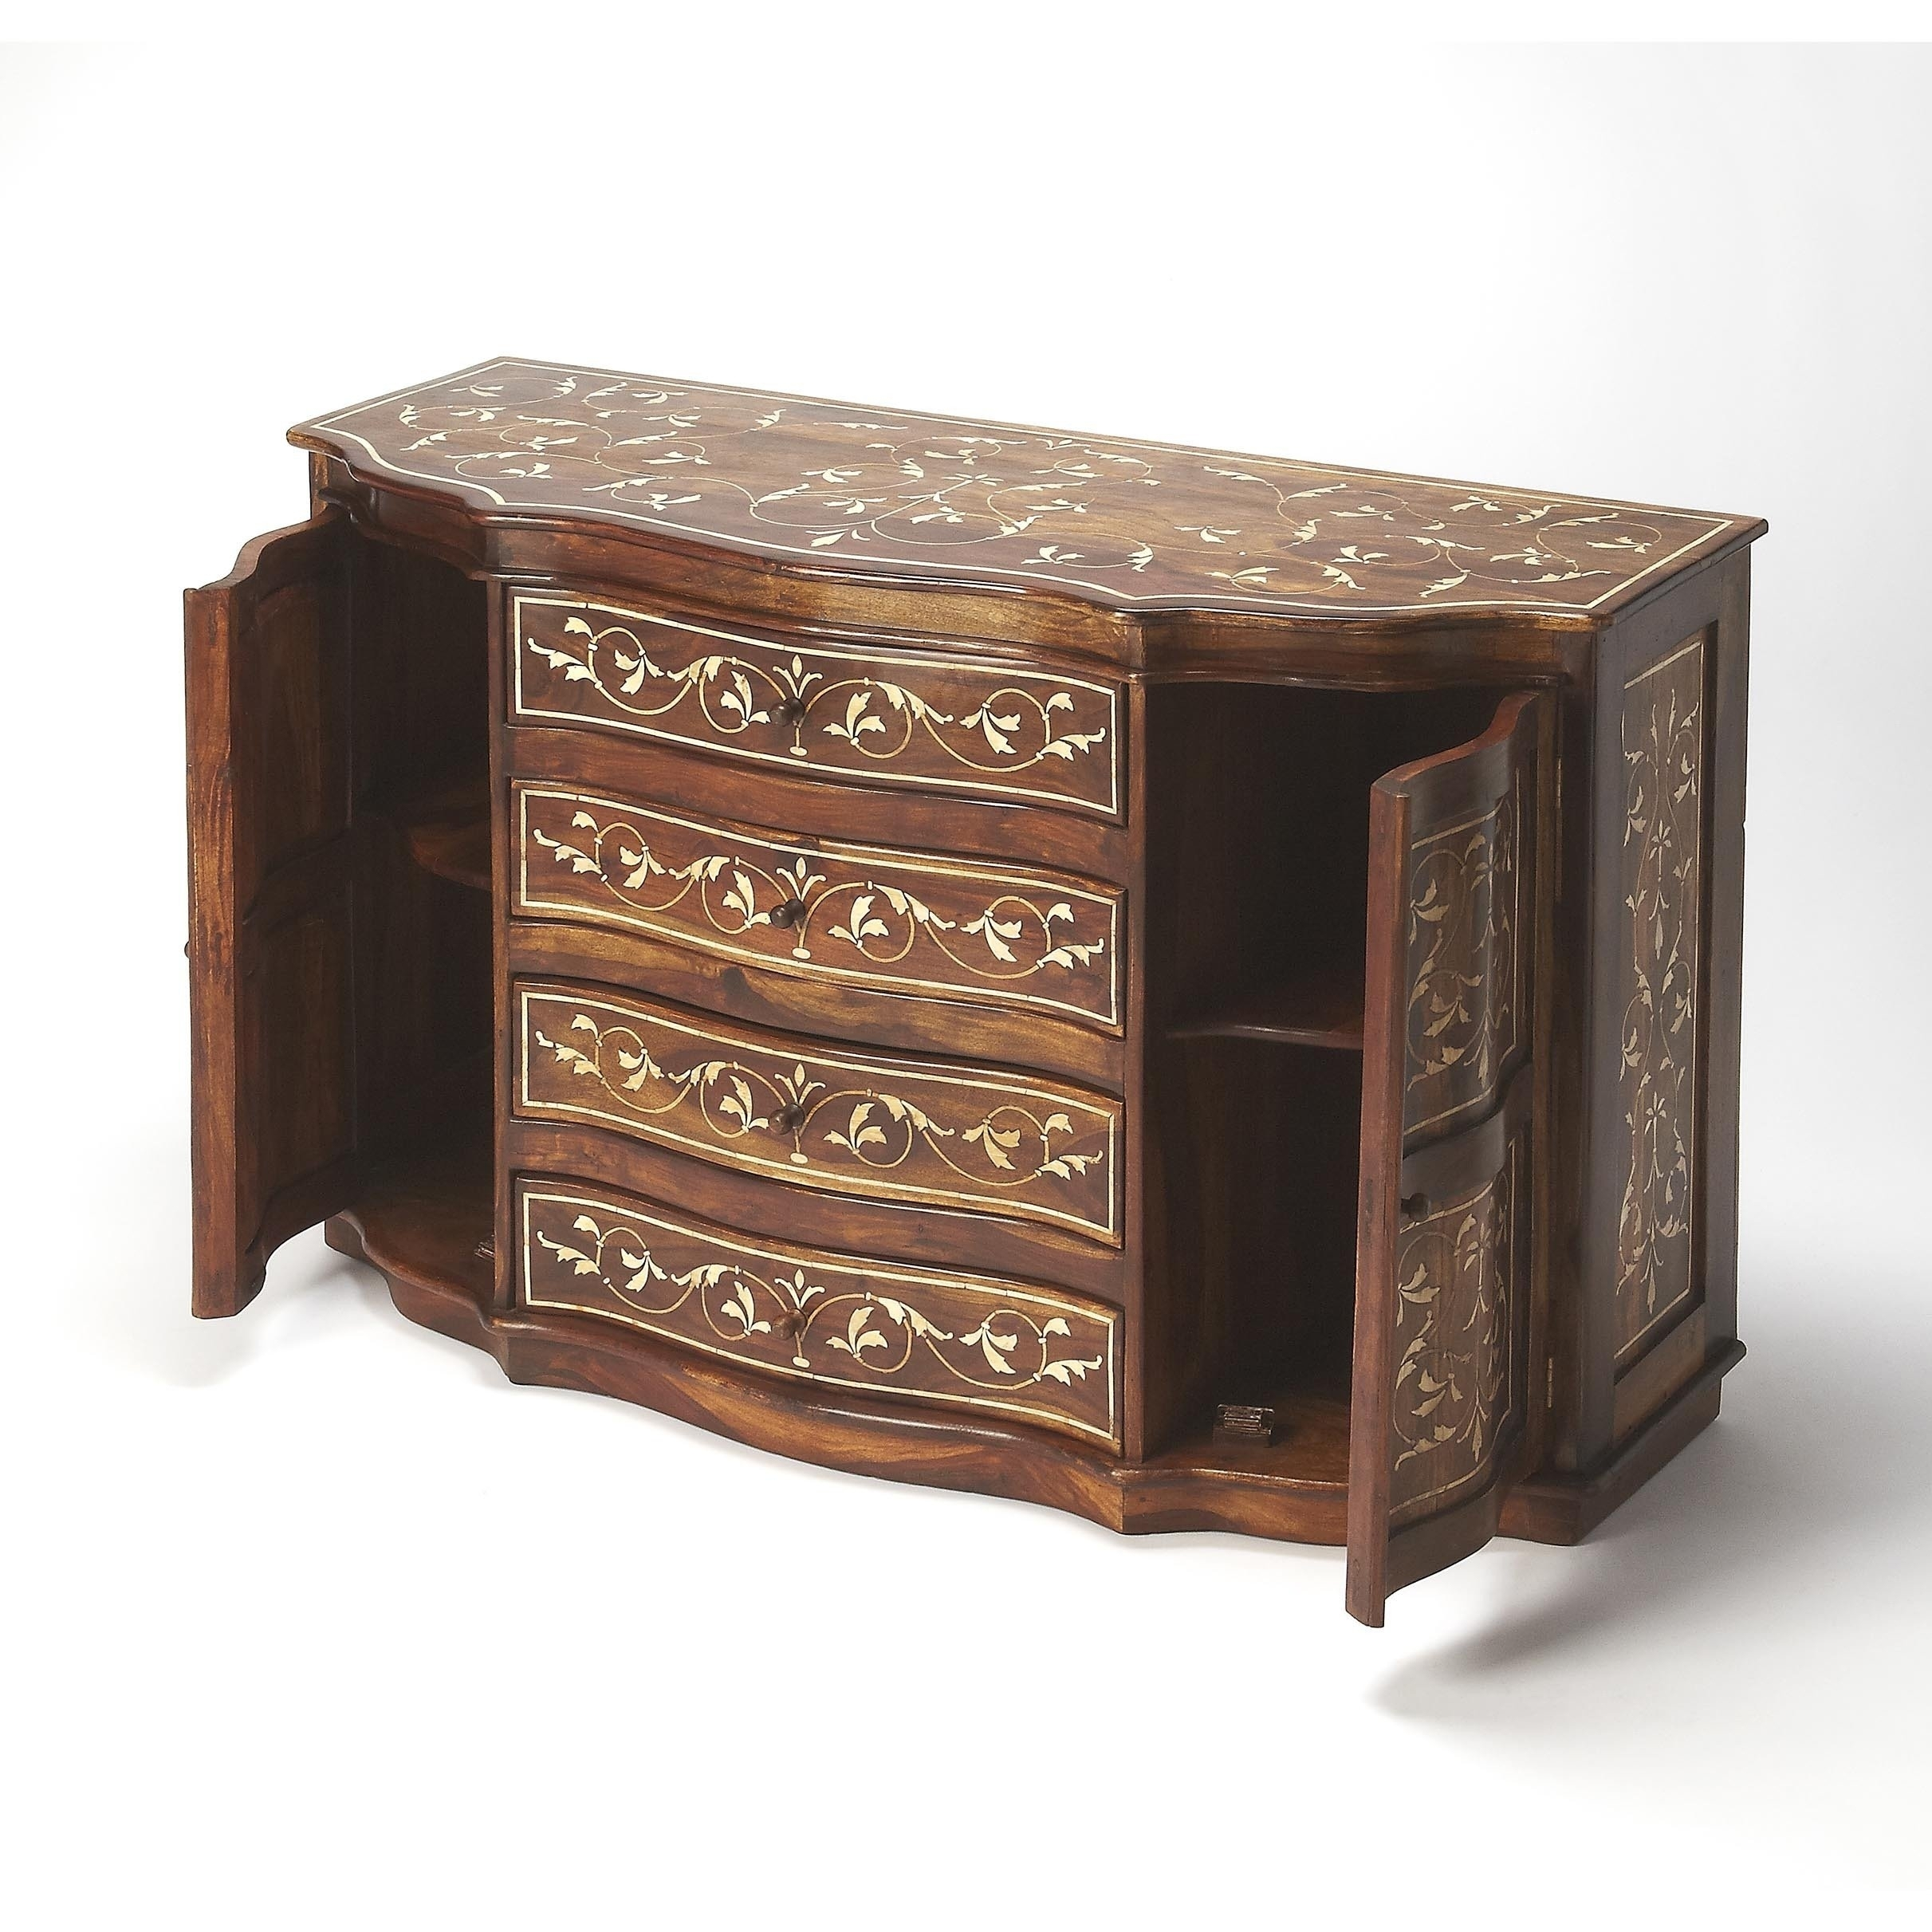 Shop Handmade Butler Chevrier Wood & Bone Inlay Sideboard (India with regard to Geo Pattern Black And White Bone Inlay Sideboards (Image 27 of 30)